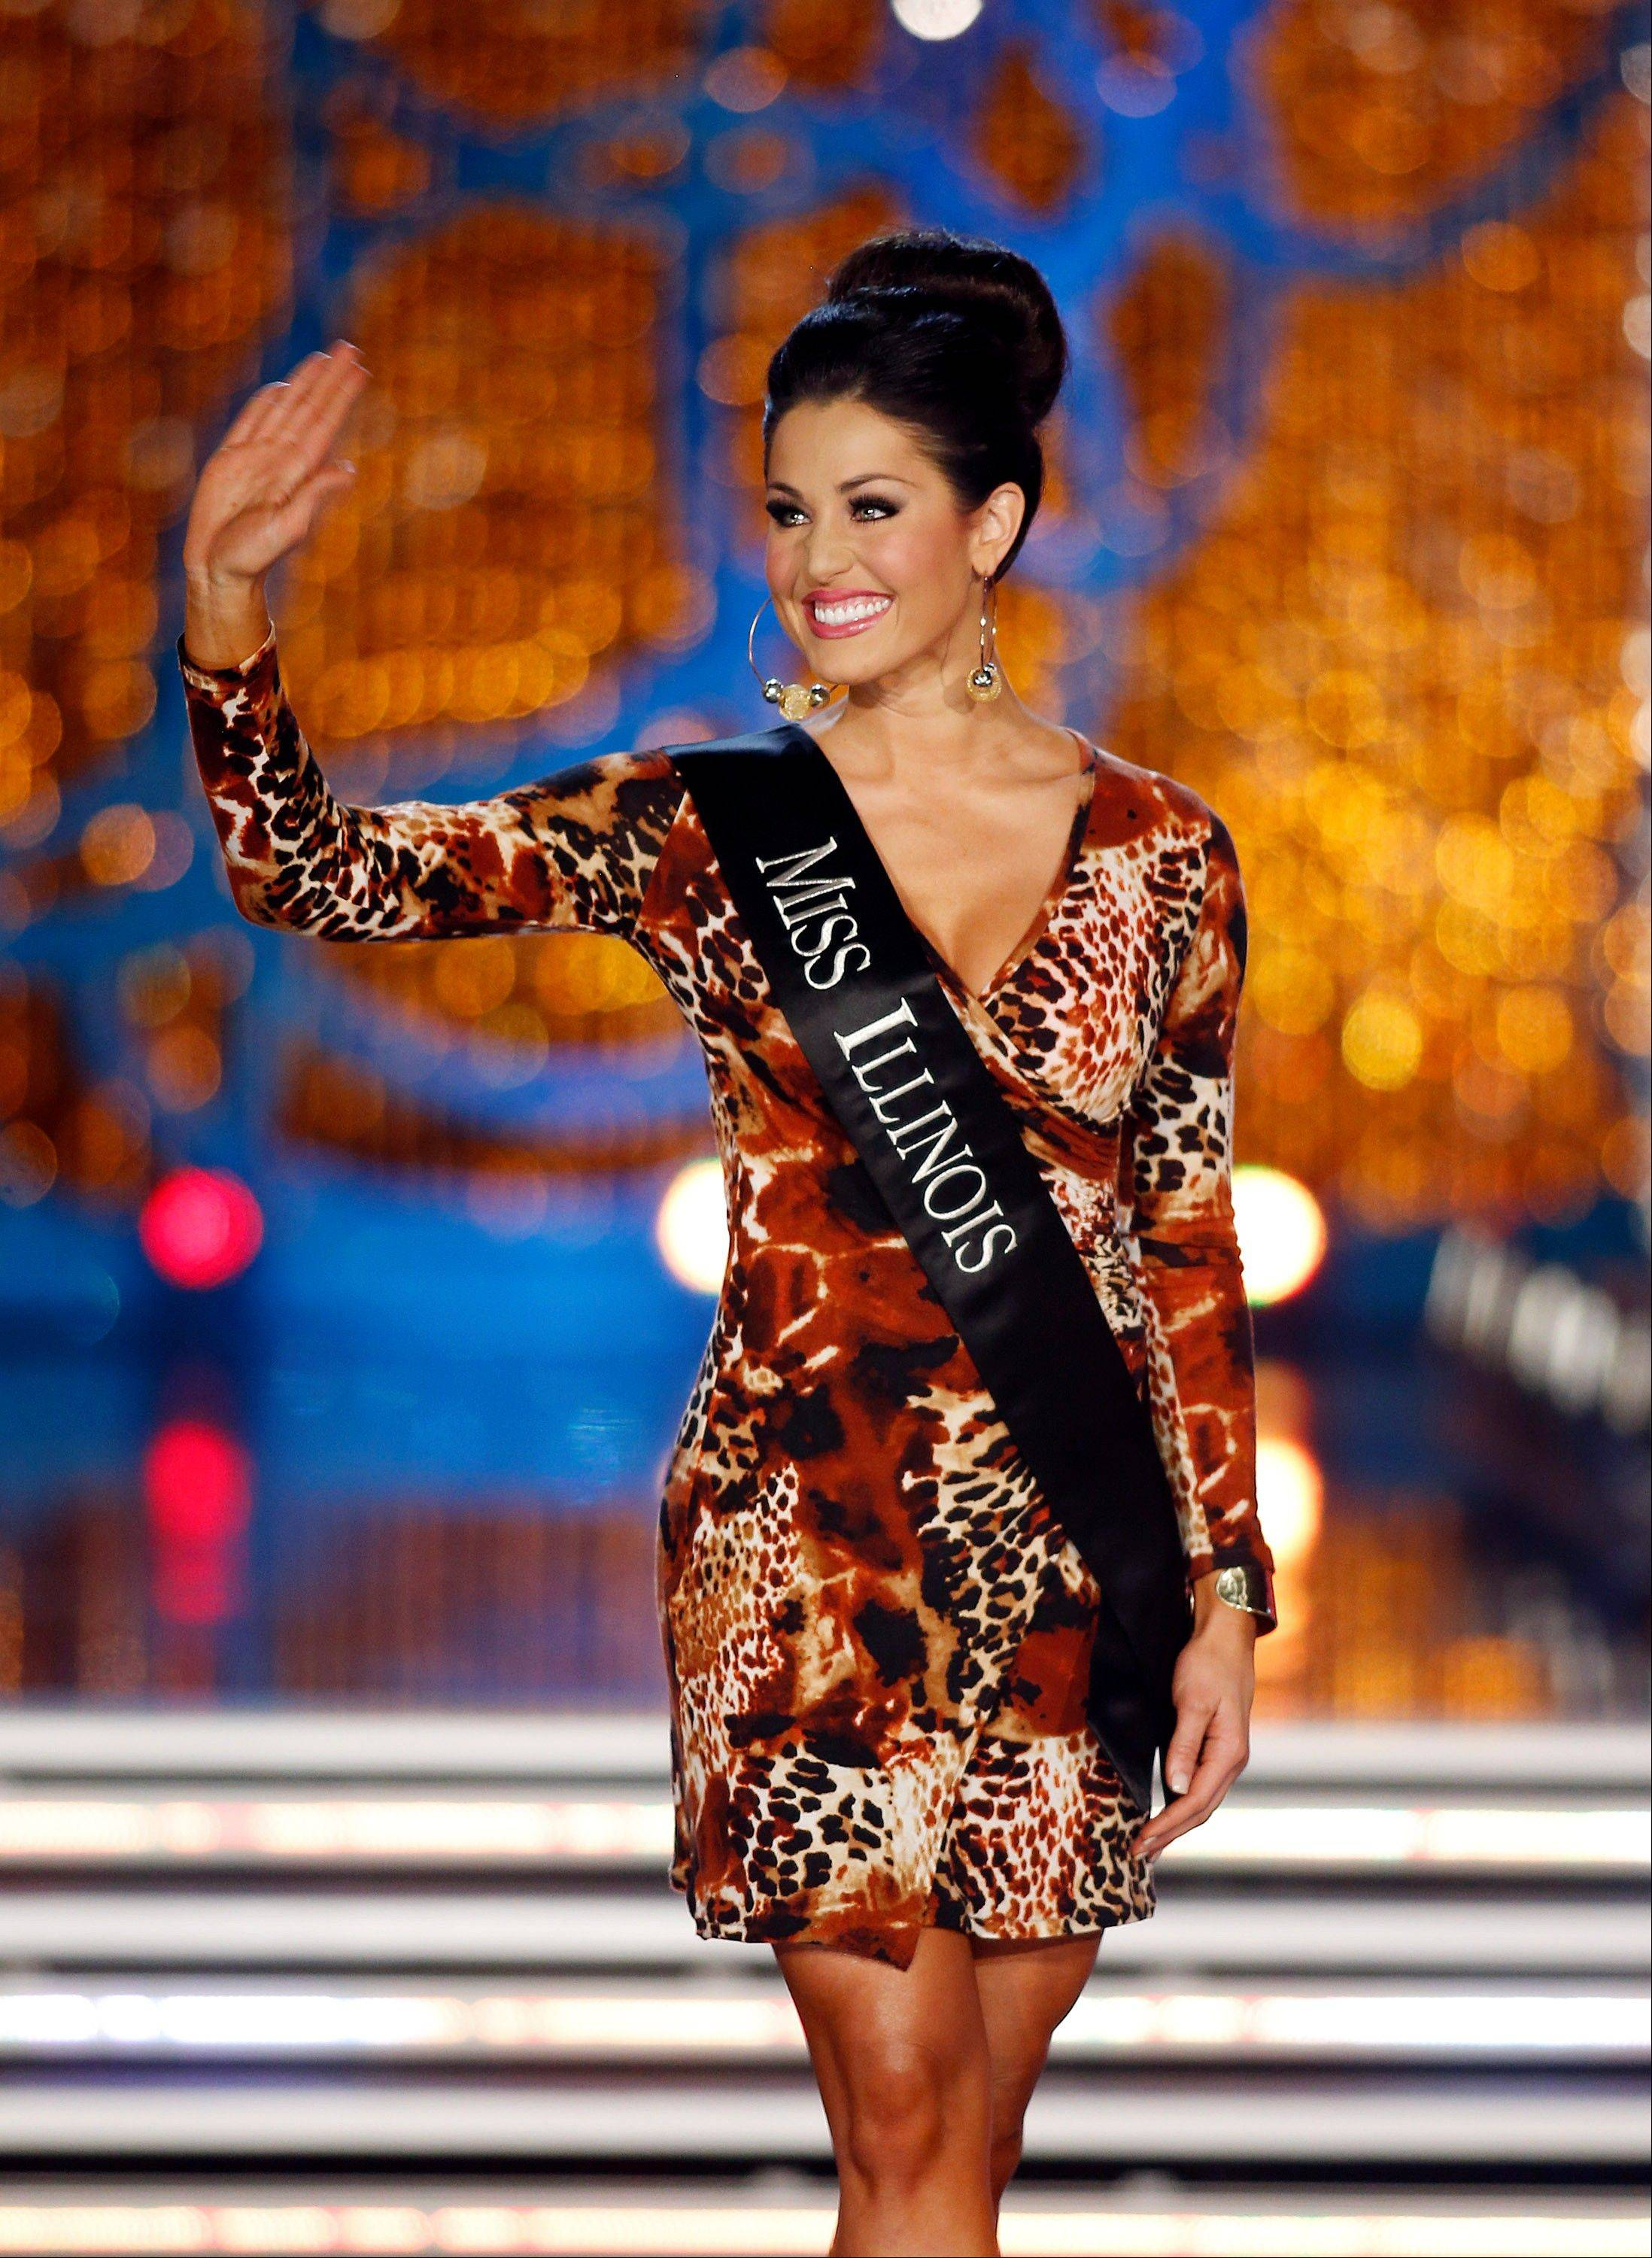 Miss Illinois Megan Ervin competes in the Miss America pageant on Saturday, Jan. 12, 2013, in Las Vegas.